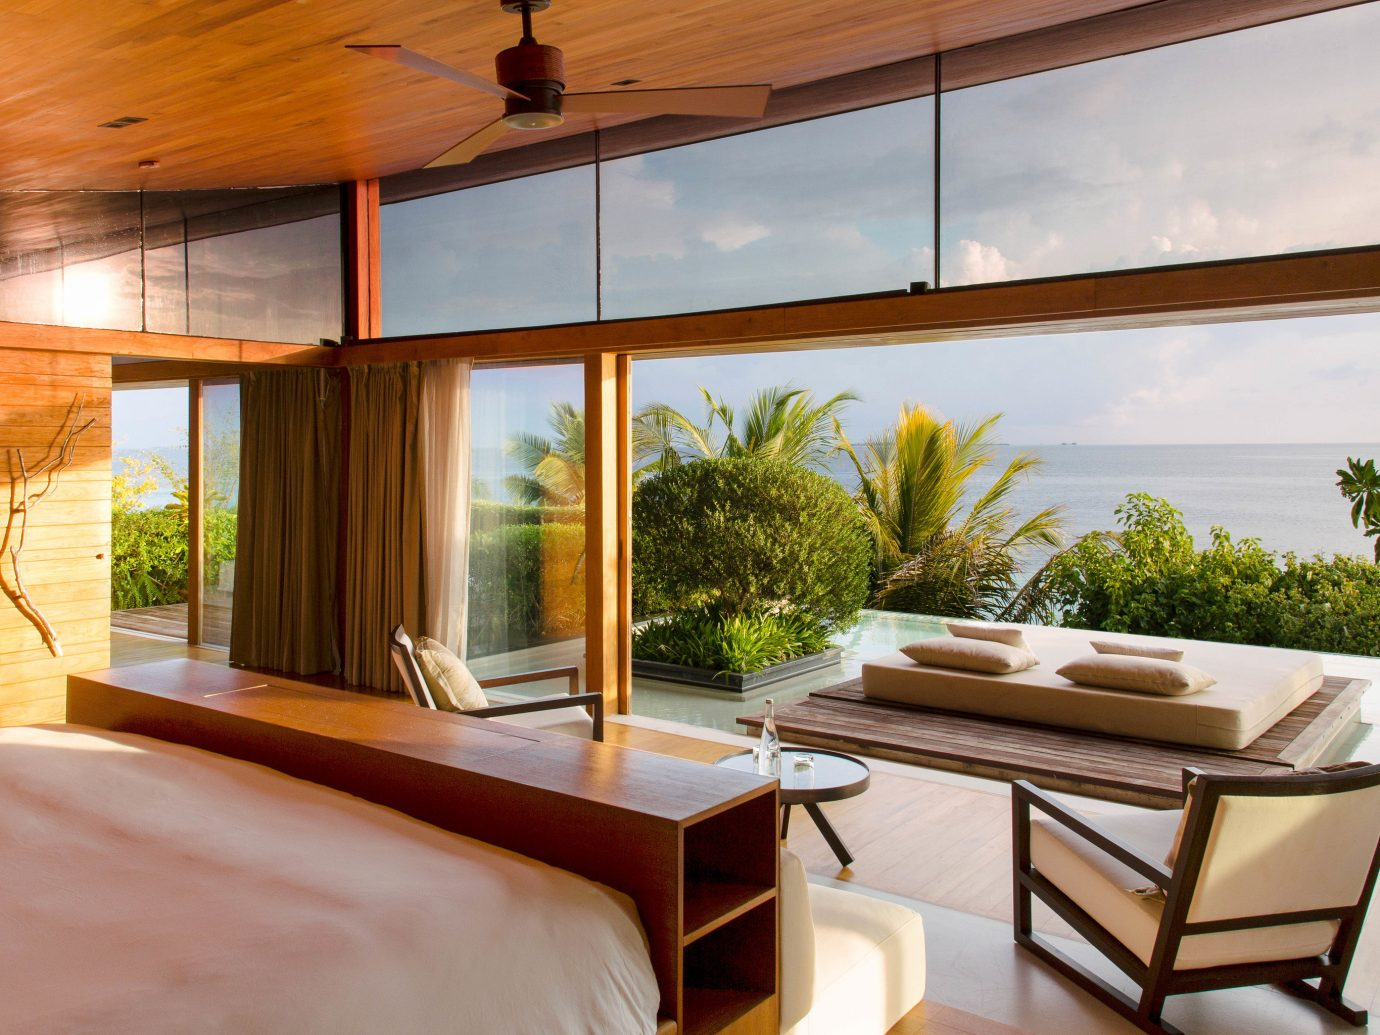 bedroom at Coco Prive in the Maldives